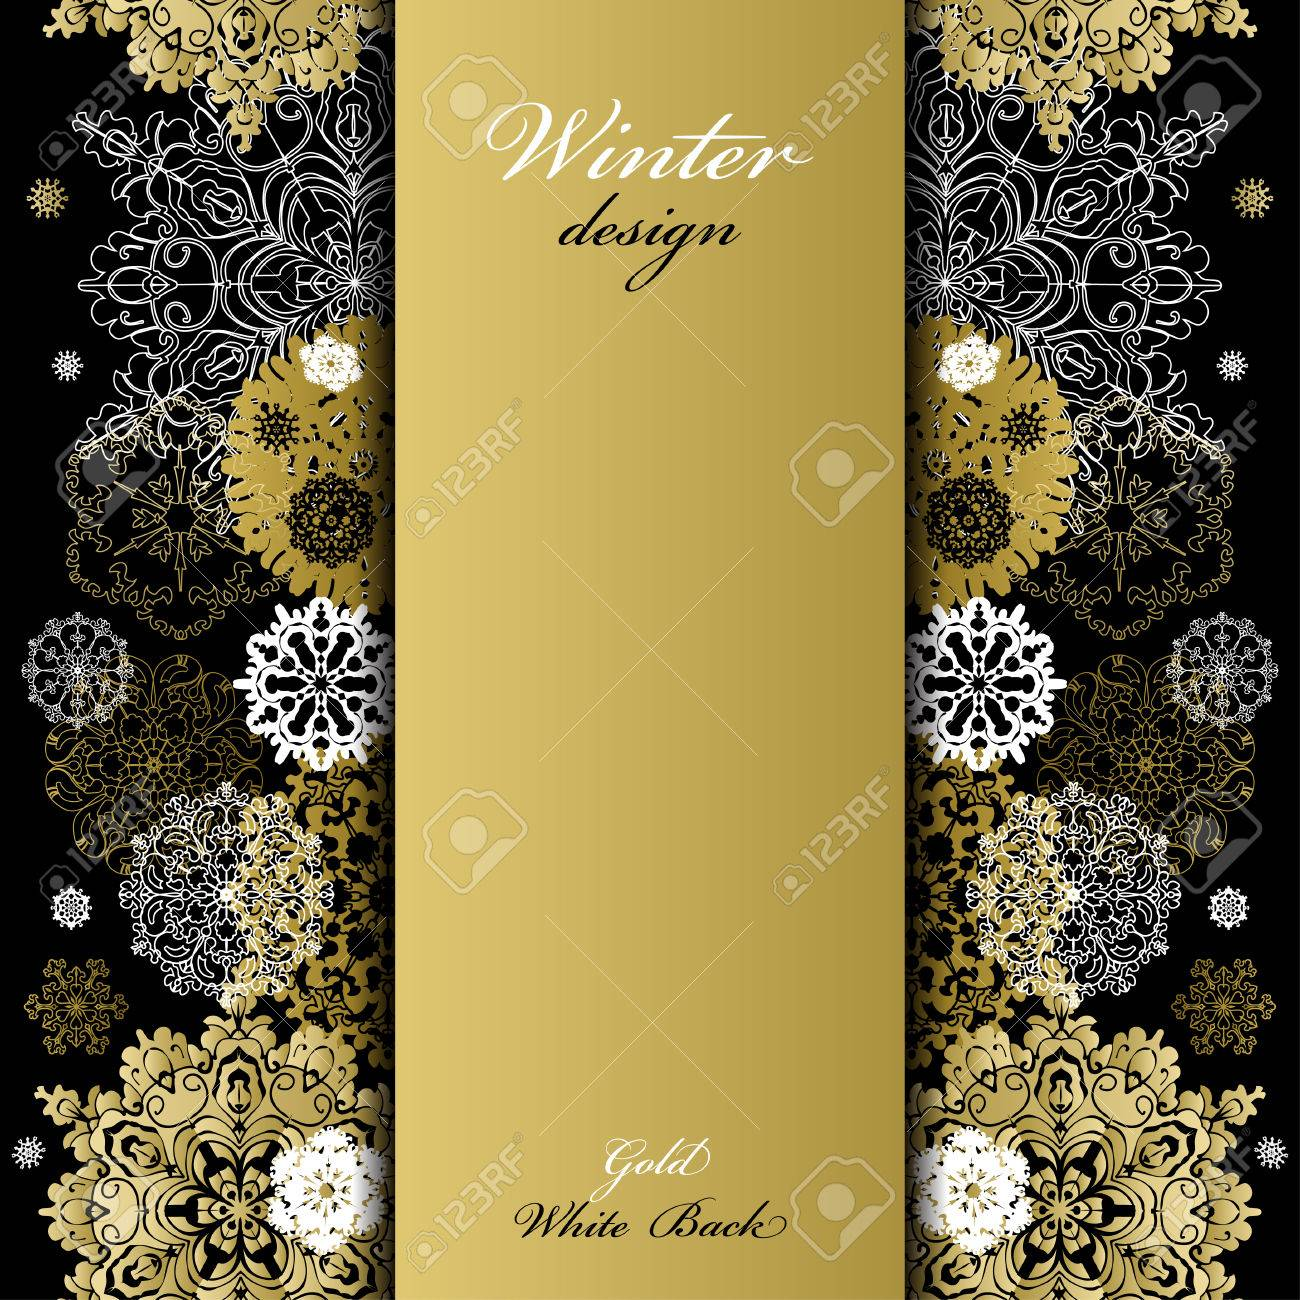 Background image vertical center - Vector Winter Abstract Design With Gold And White Snowflakes And Stars And Black Background Trend Golden Design Vertical Center Border Stripe And Text